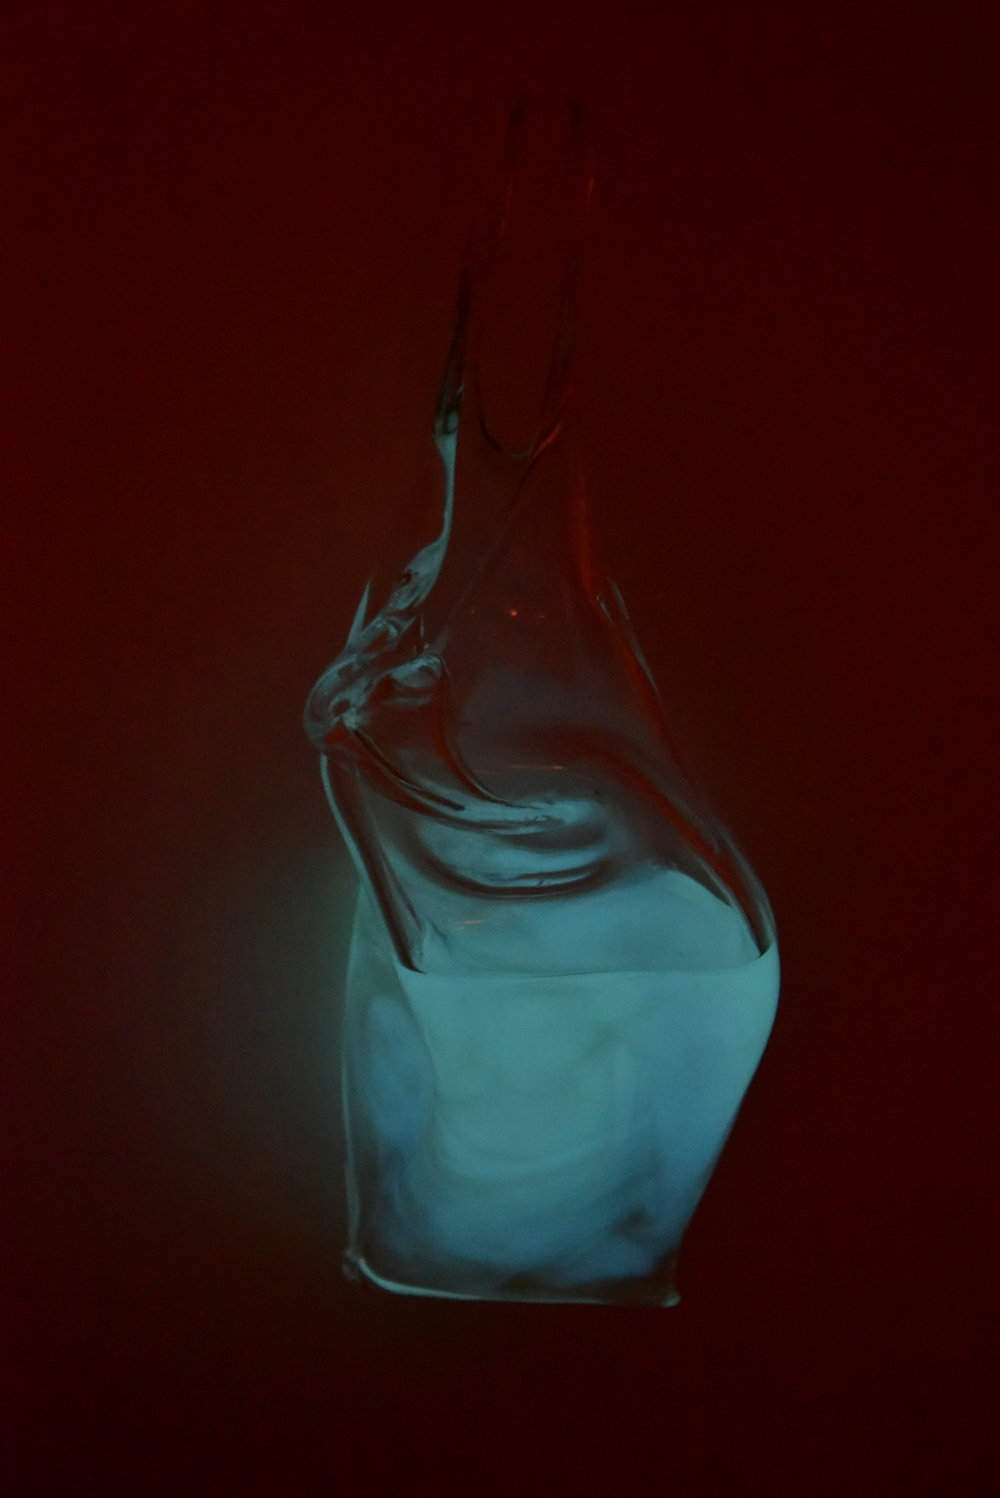 Living light installation - bioluminescent bacteria encapsulated in a beautiful glass creation by Isaac Katzoff.